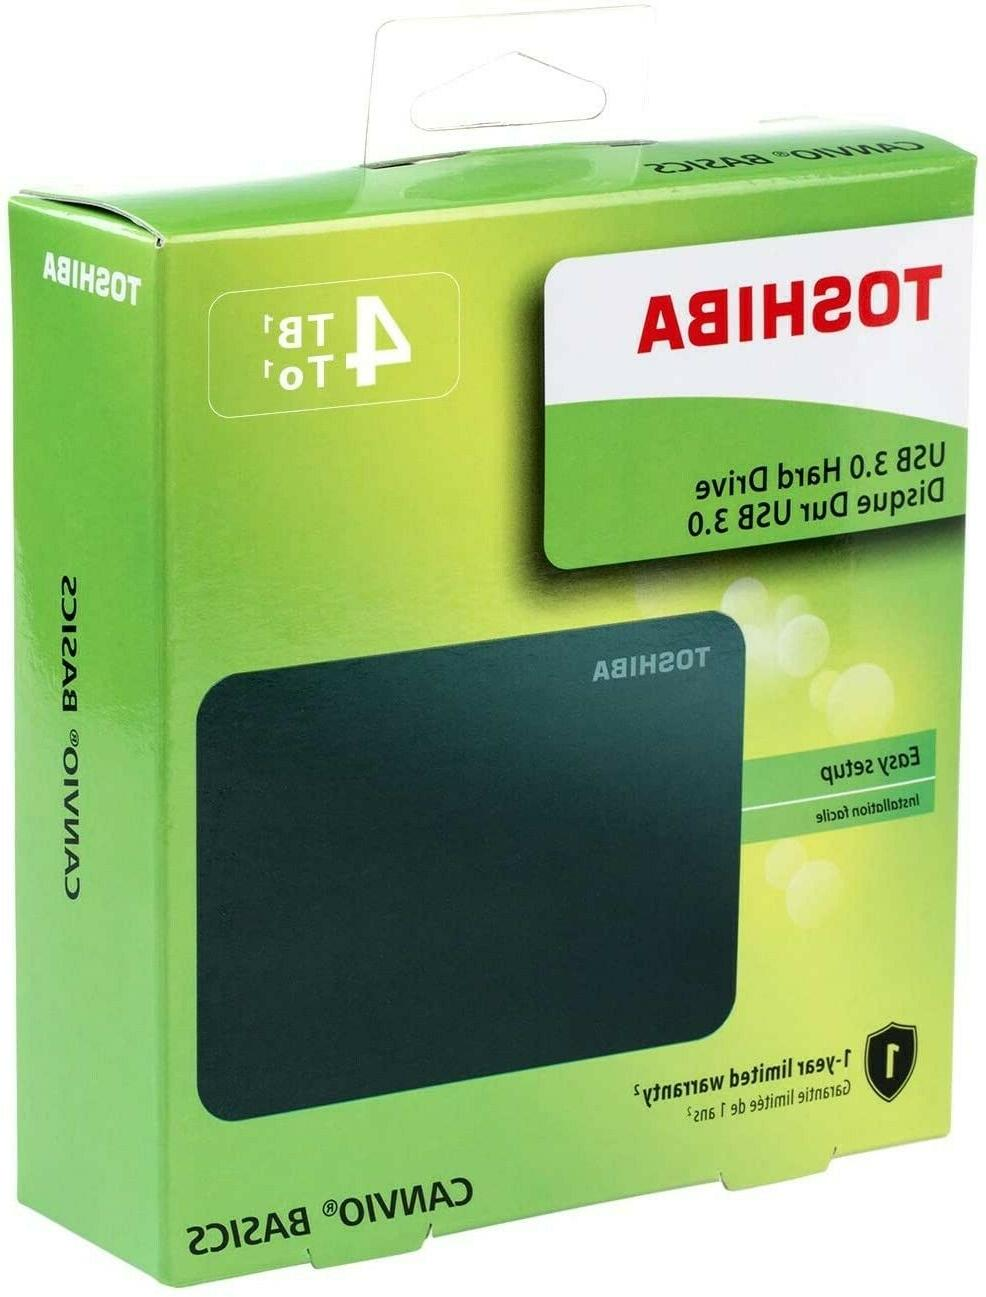 4TB Portable with Over Included! Just Play!!!